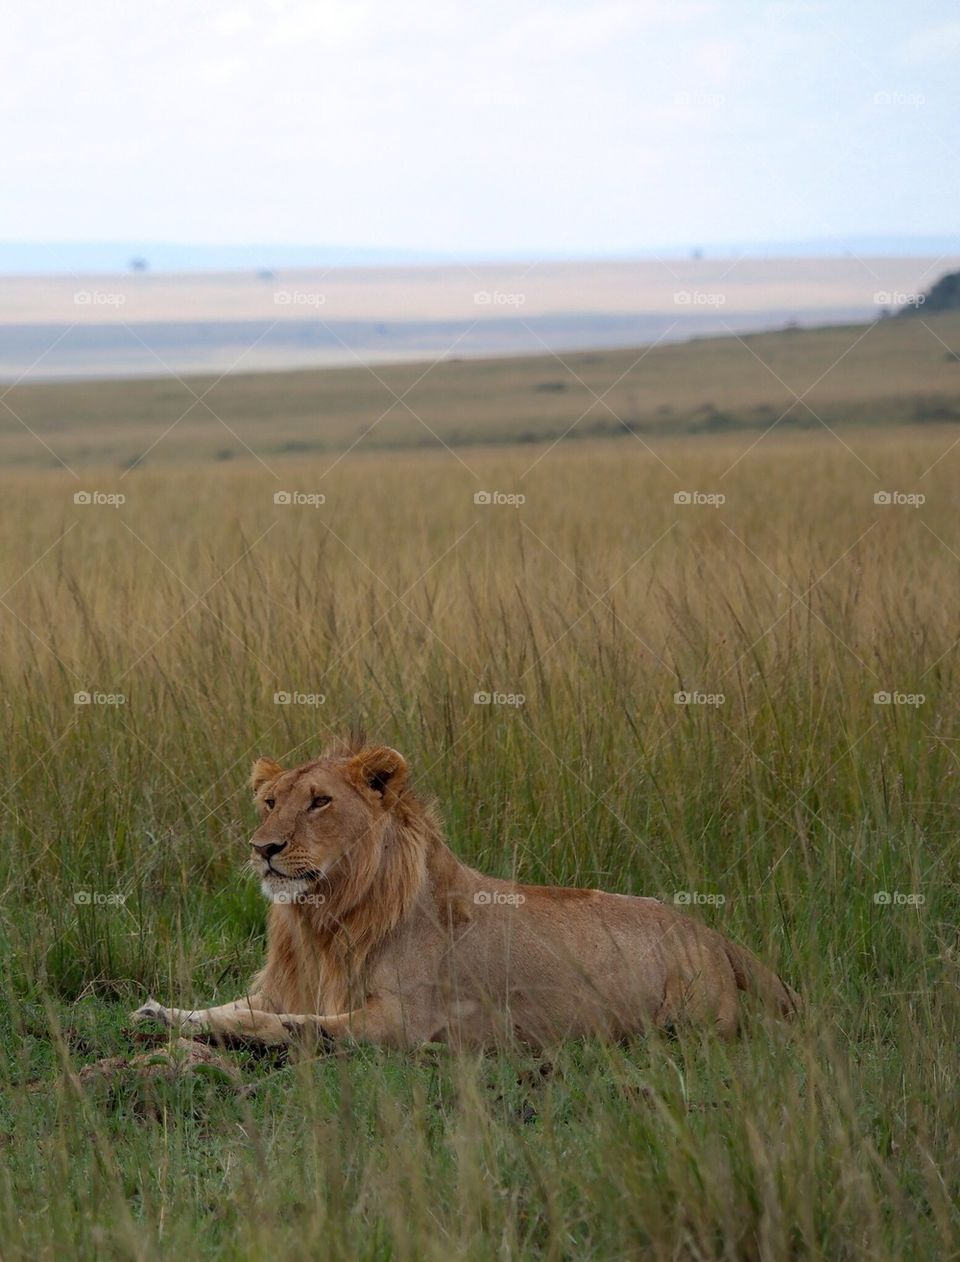 High angle view of lion sitting on grass